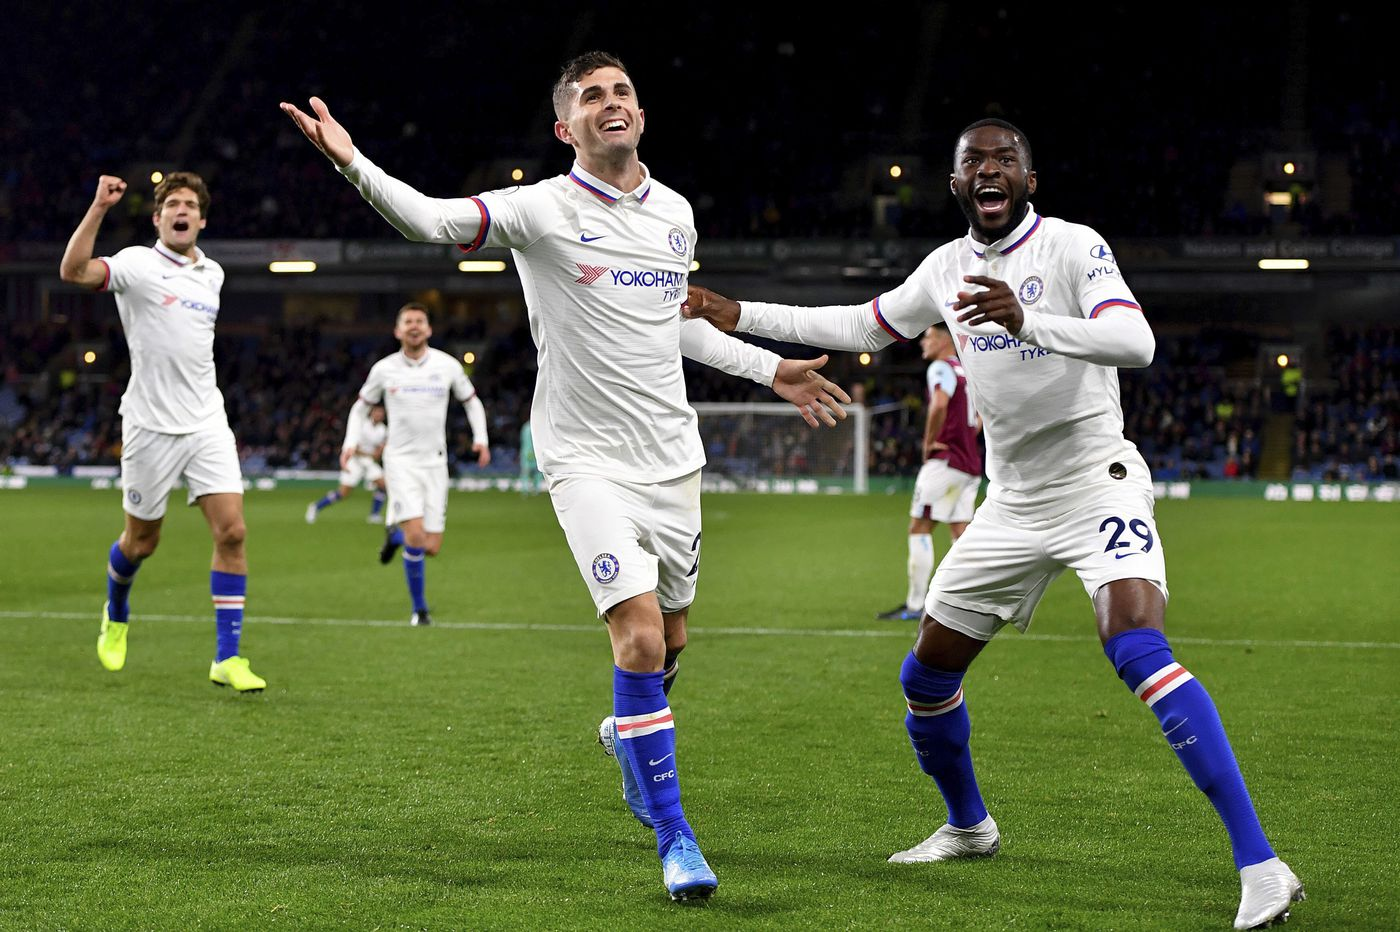 Christian Pulisic hat trick leads Chelsea win as Hershey native scores first Premier League goals